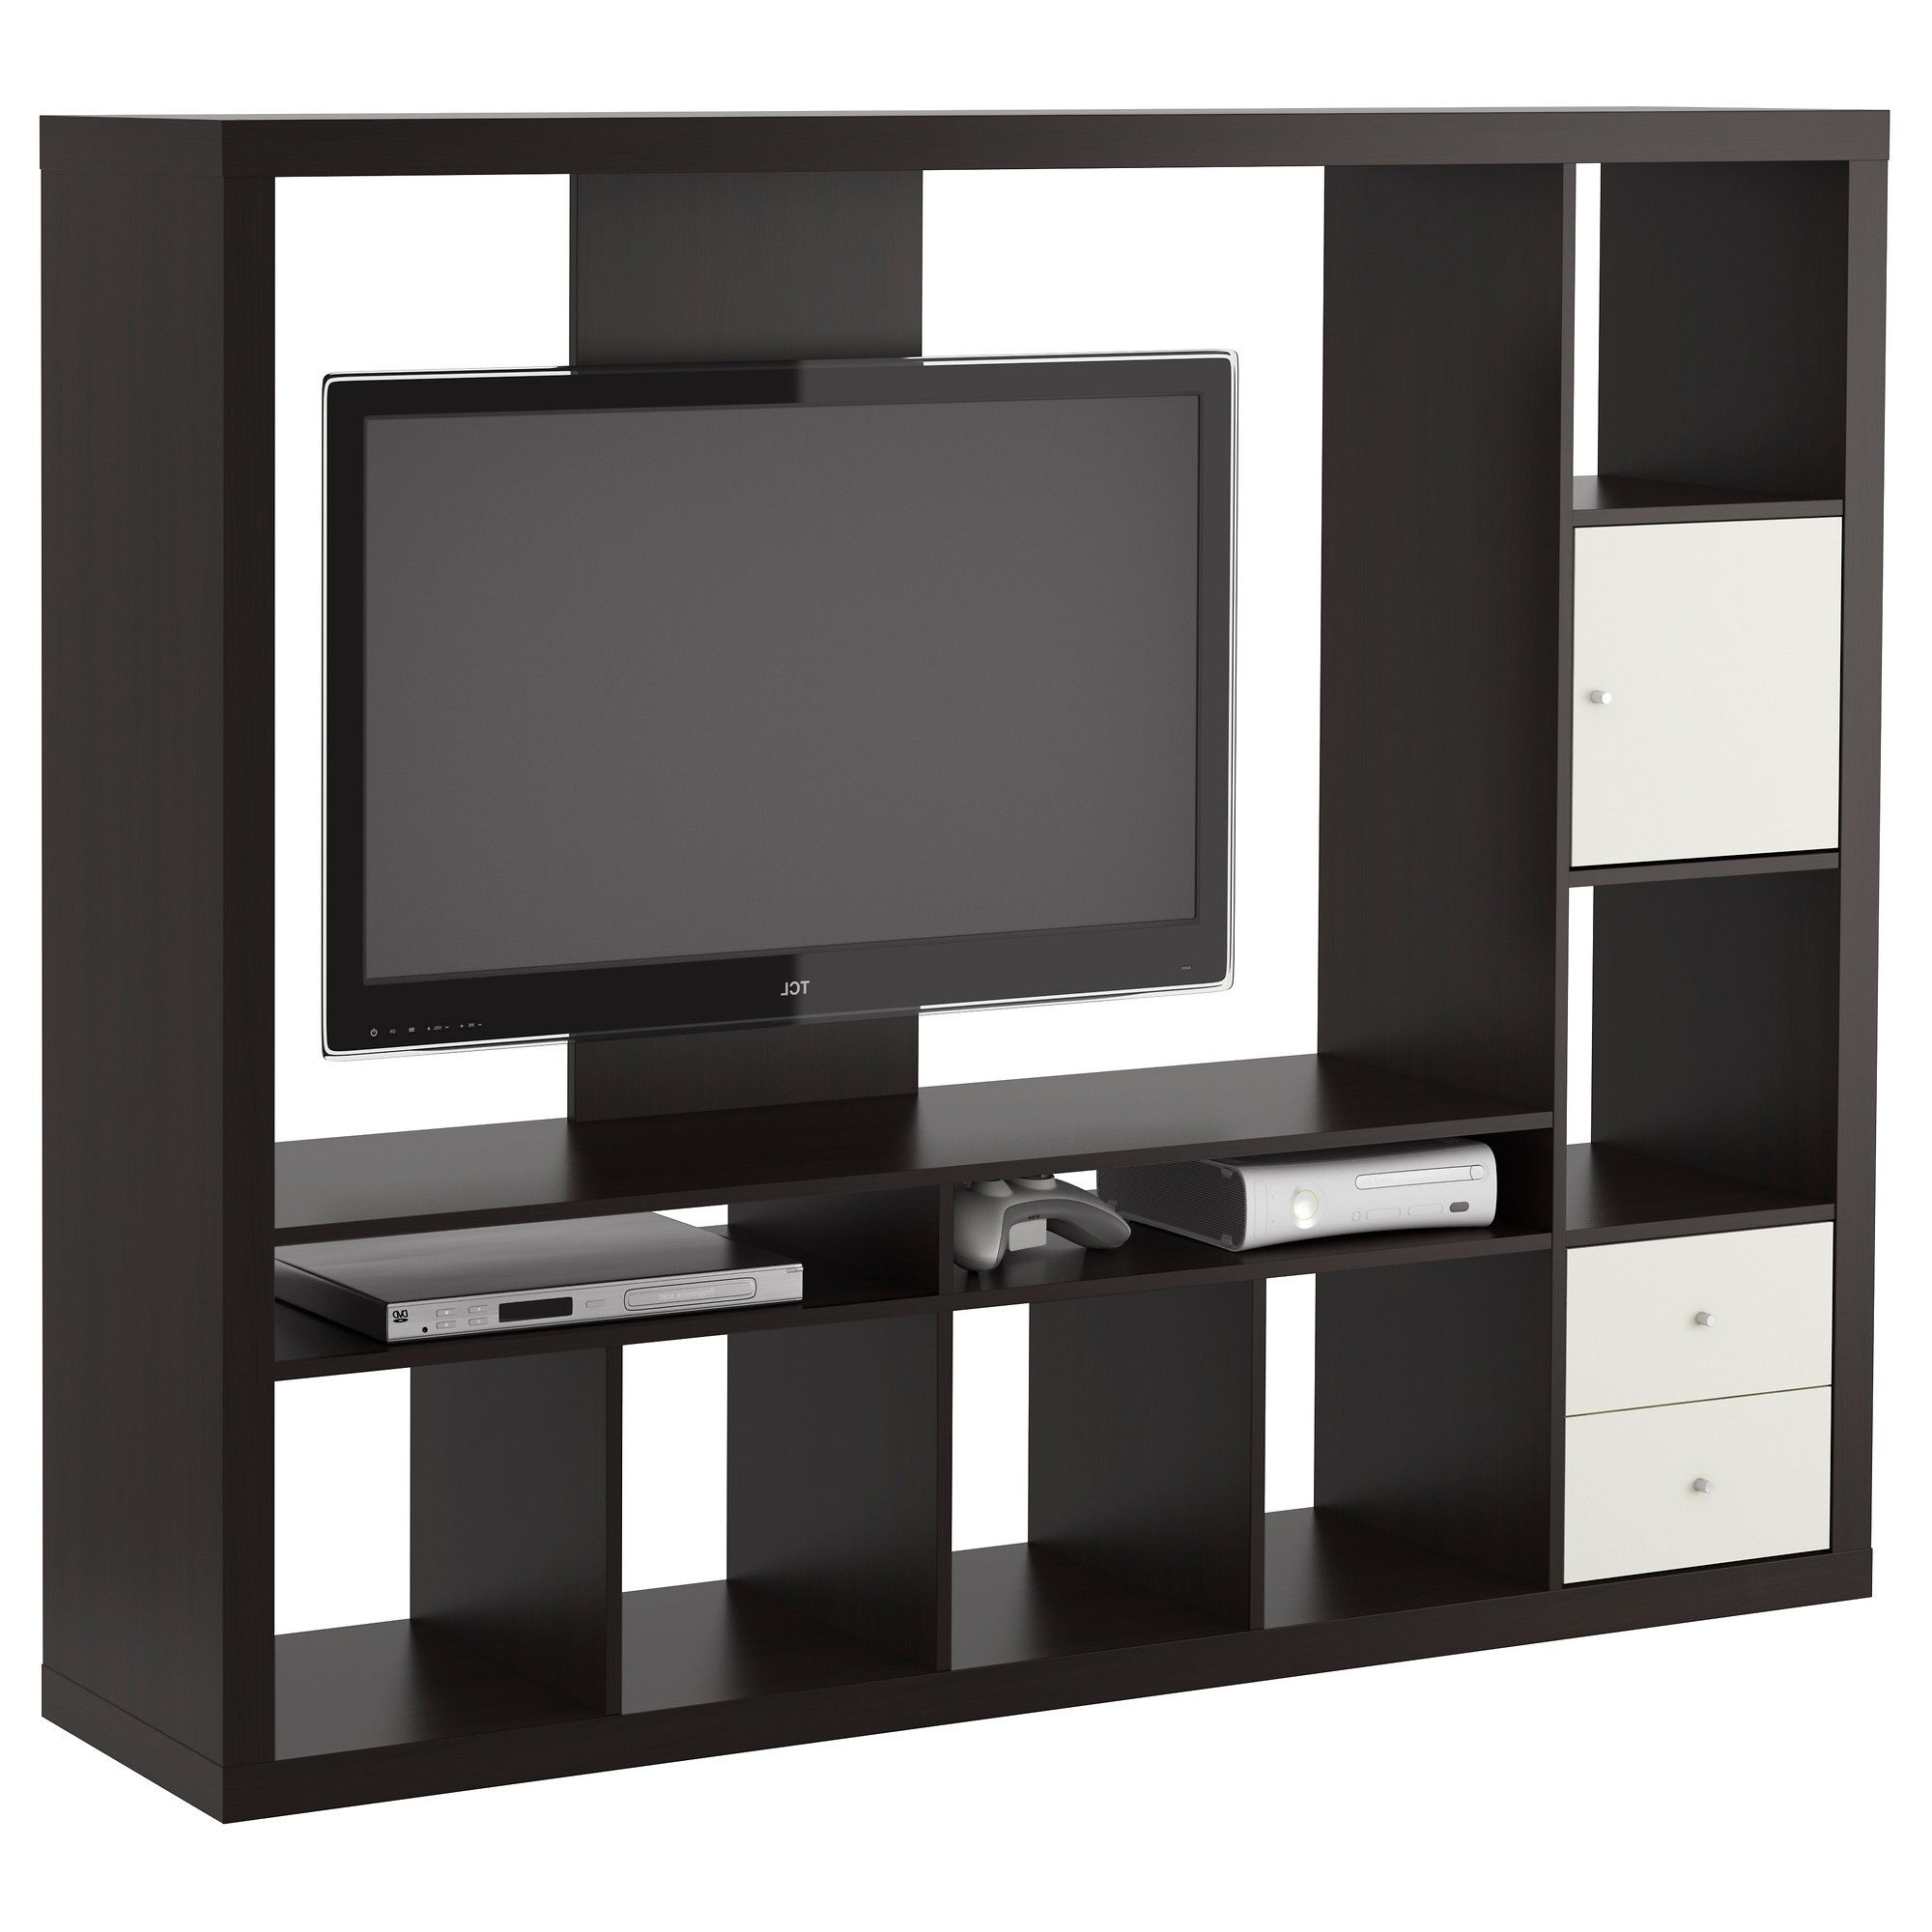 Black Polished Solid Wood Tv Cabinet With Several Open Shelves And Regarding Widely Used Black Tv Cabinets With Drawers (View 3 of 20)